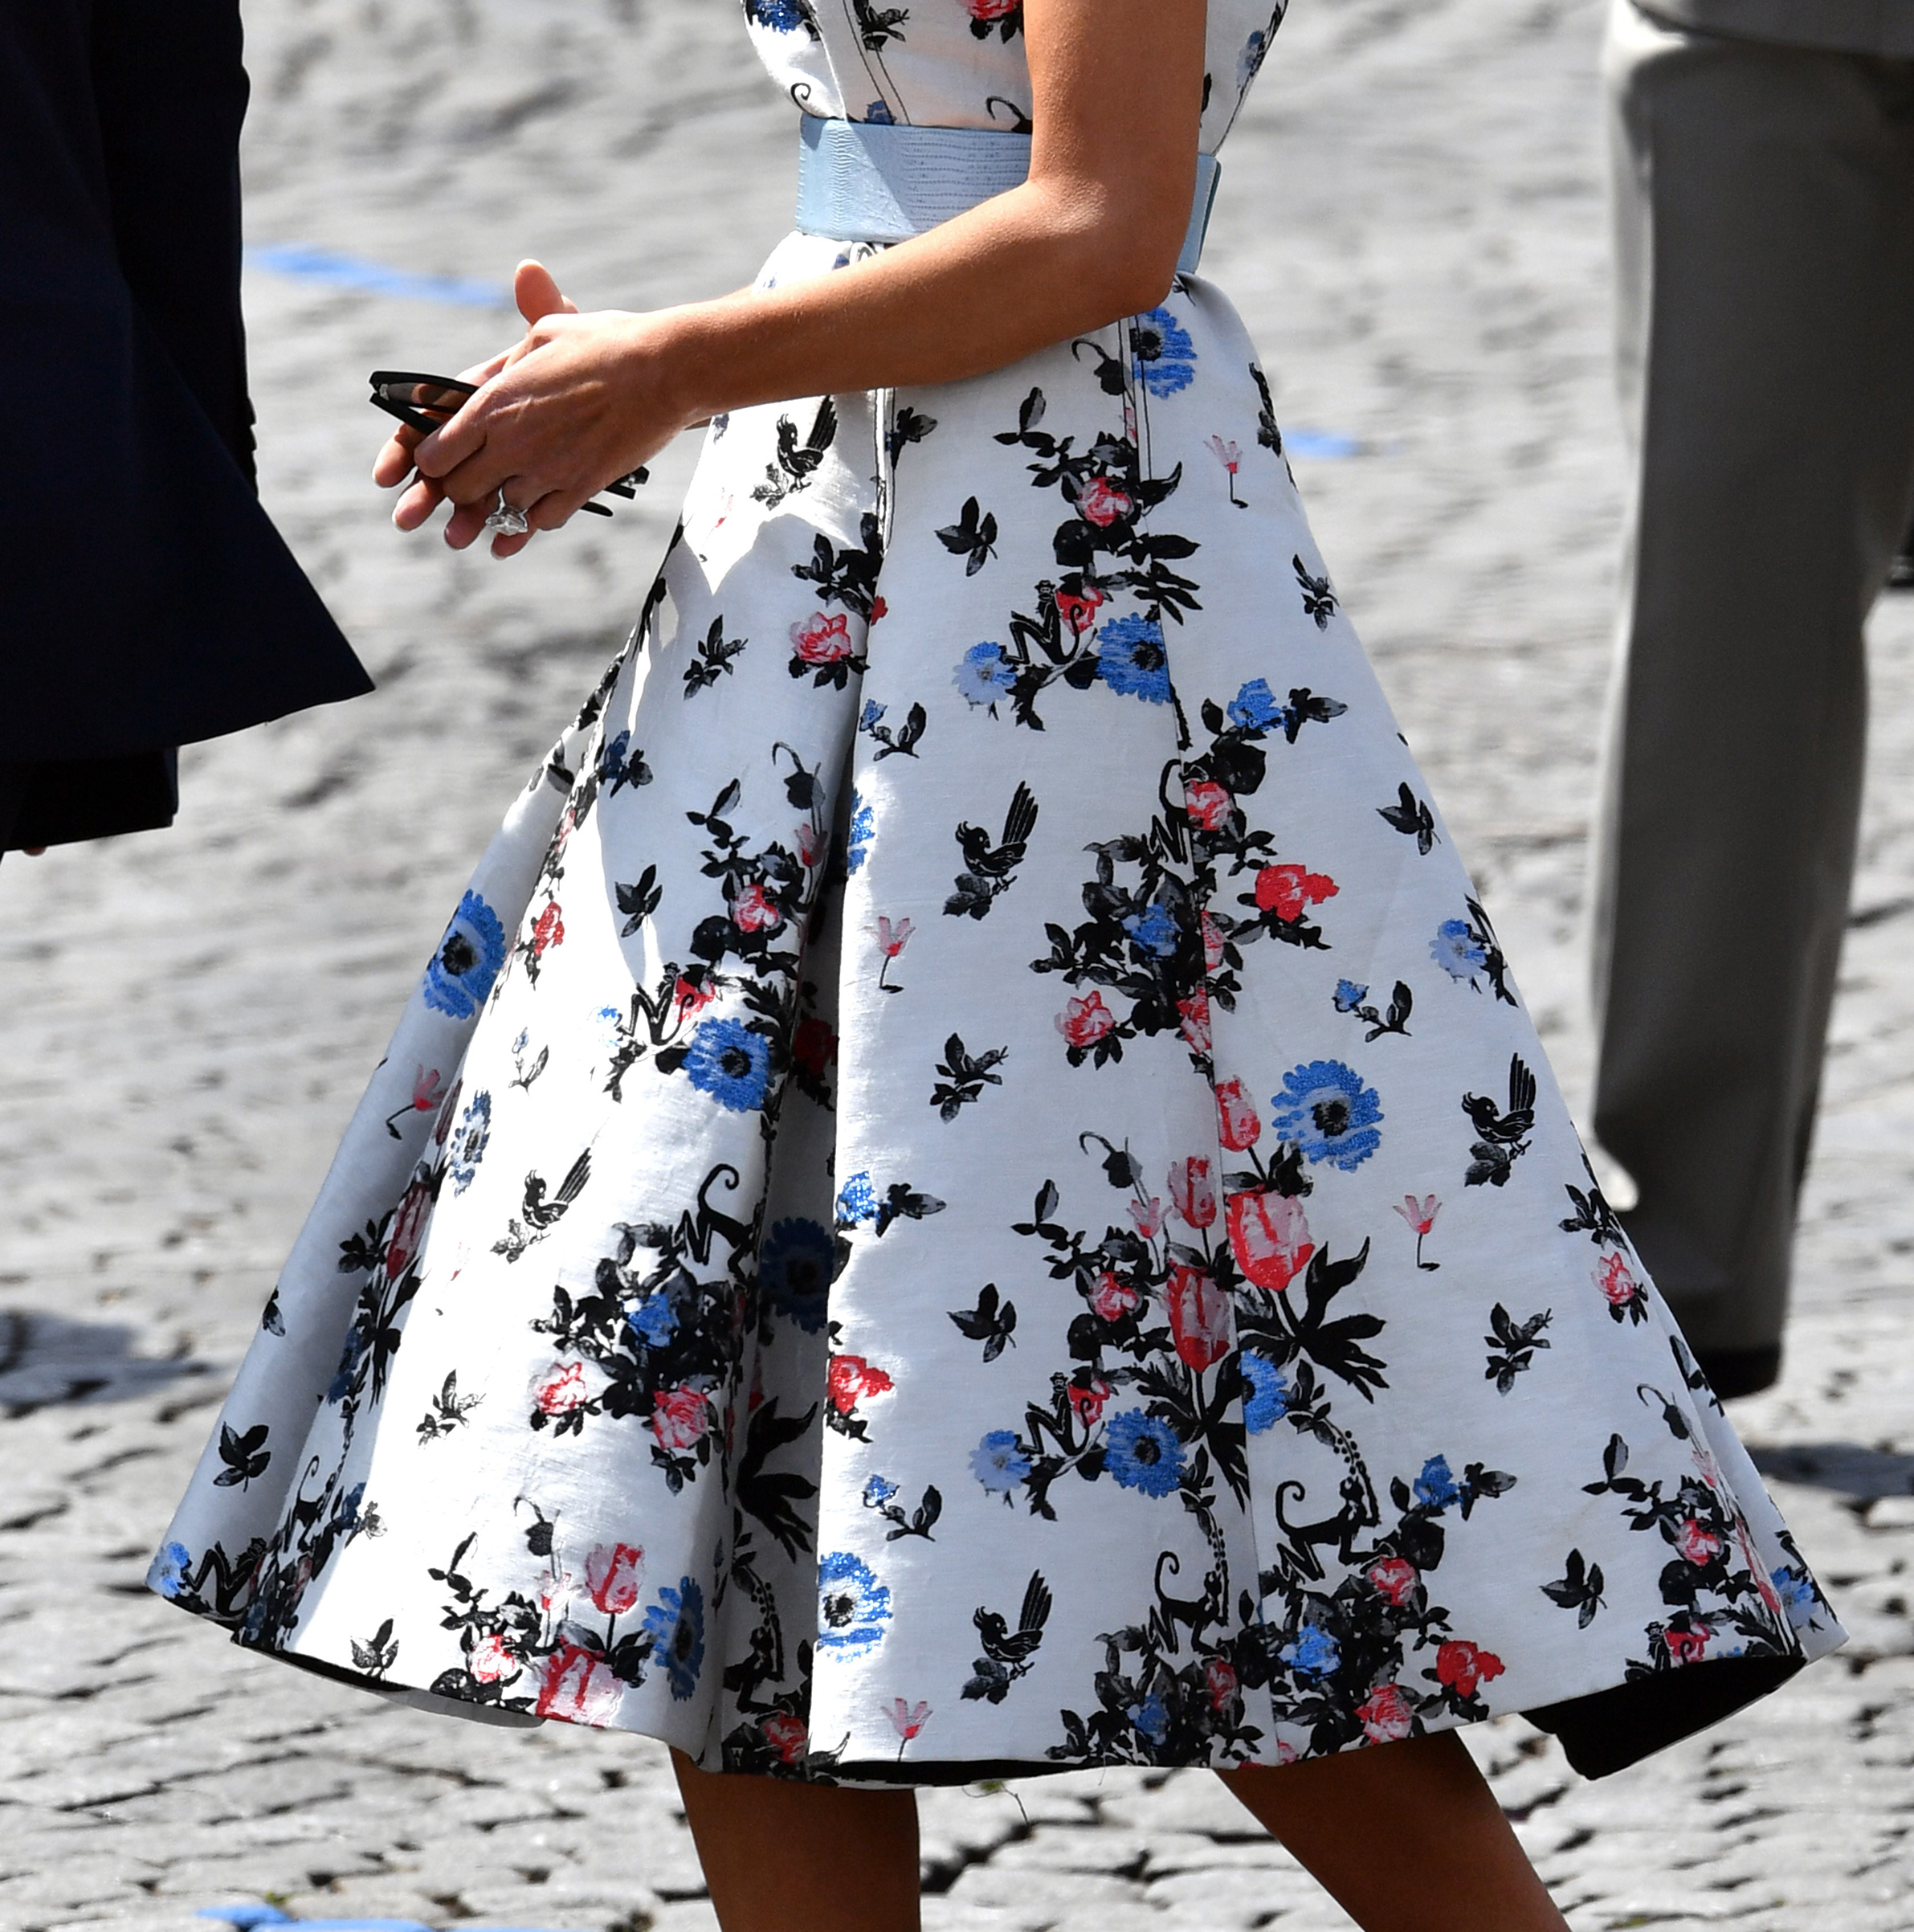 A section of First lady Melania Trump's Valentino dress as she attends the annual Bastille Day military parade along Avenue des Champs-Elysees in Paris, France on July 14, 2017.